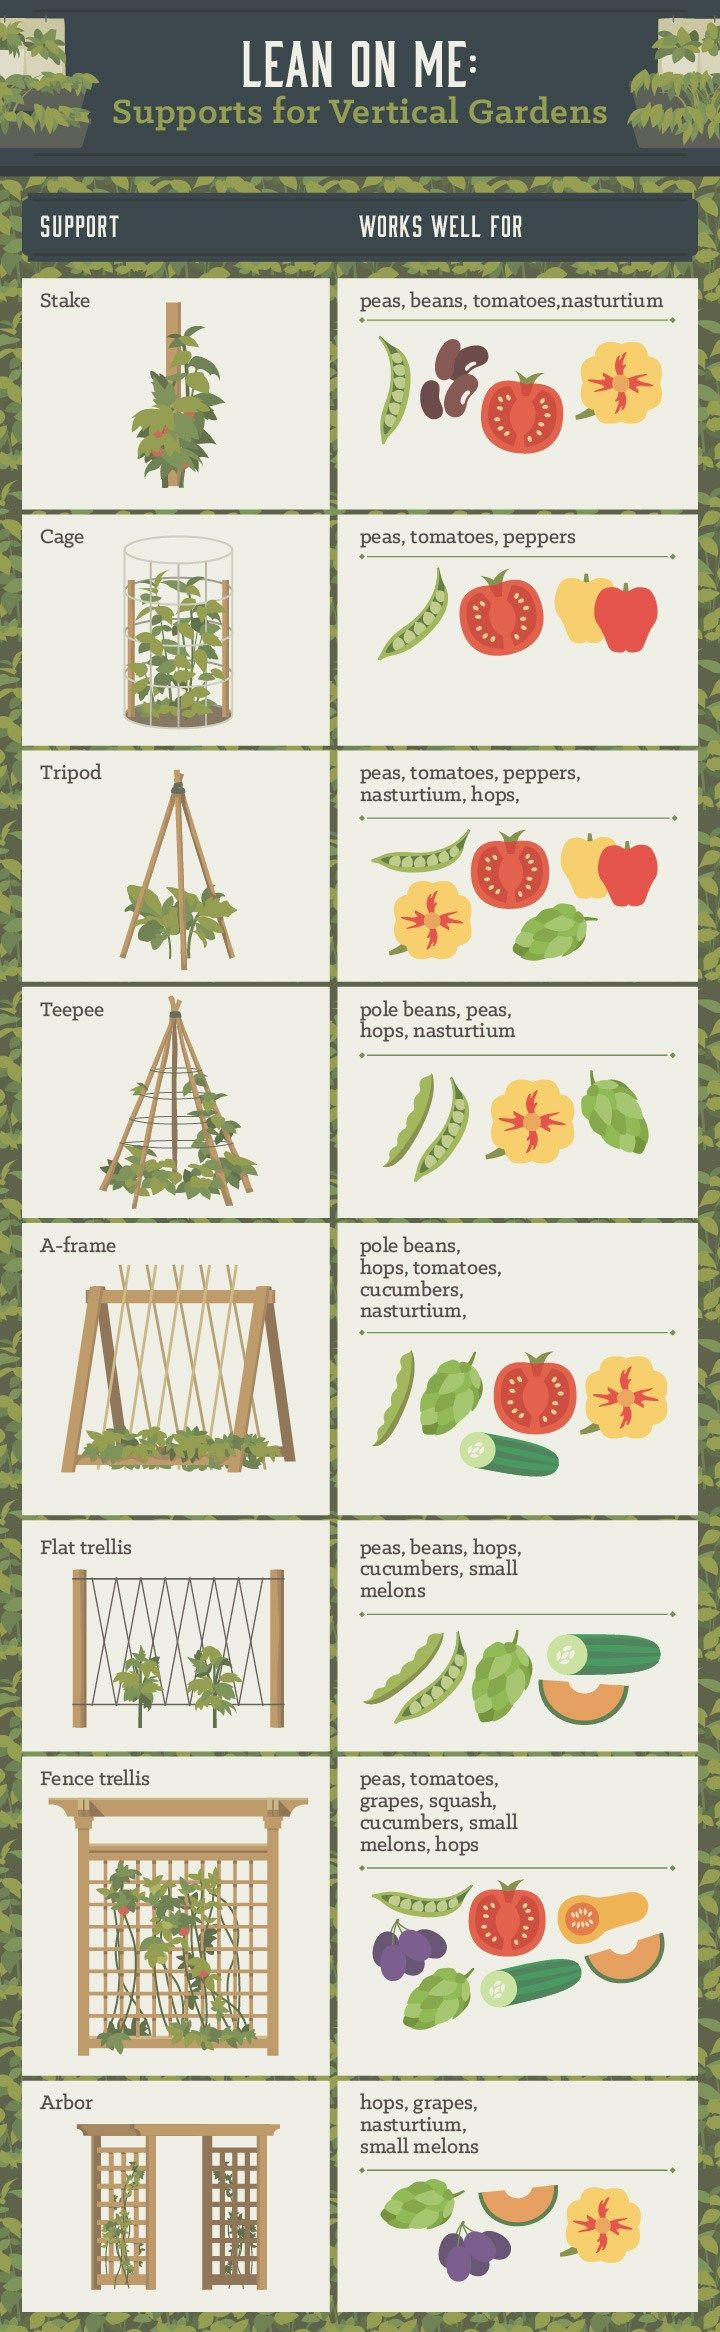 A vertical vegetable garden can be the mind blowing solution to your desire to grow your own food in small spaces. Sometimes, you need to look at a problem from a different angle. When it comes to growing vegetables, that means looking up.